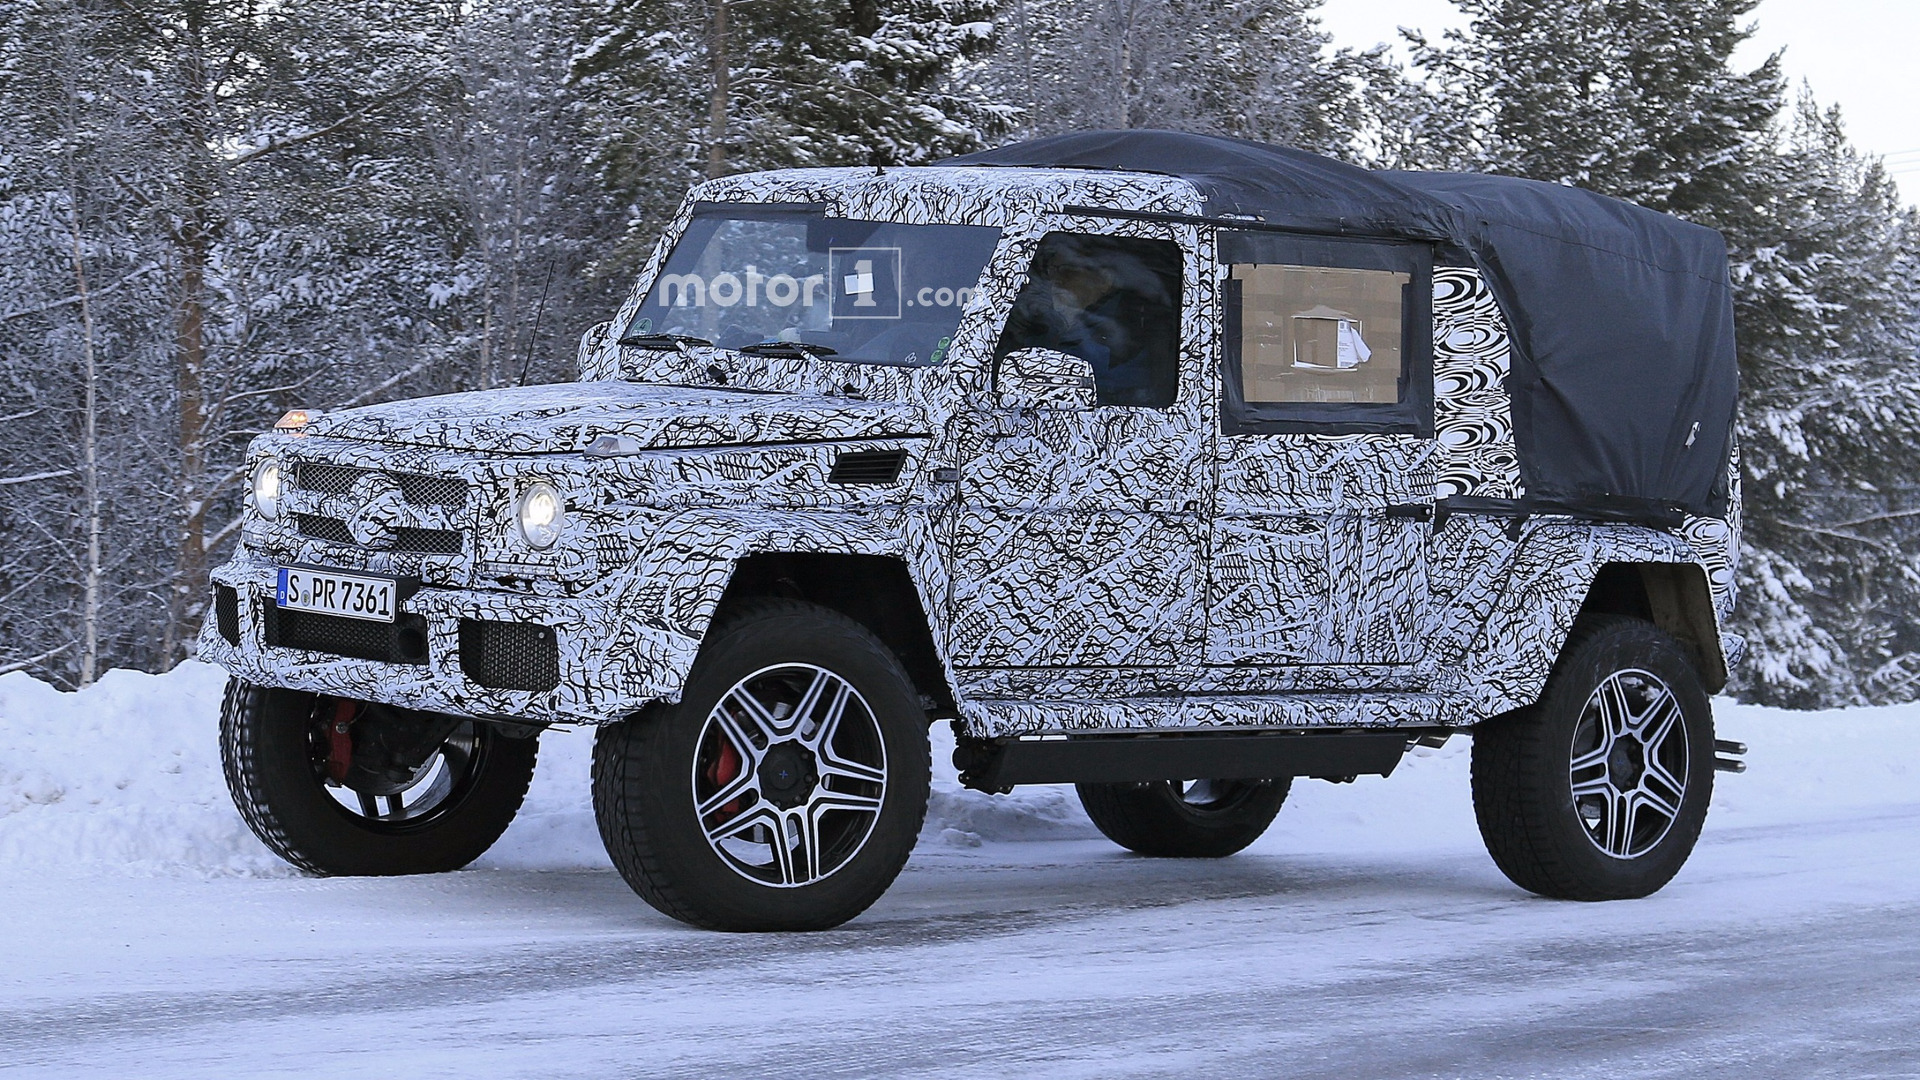 2018 mercedes g class 4x4 spied as double cab pickup. Black Bedroom Furniture Sets. Home Design Ideas